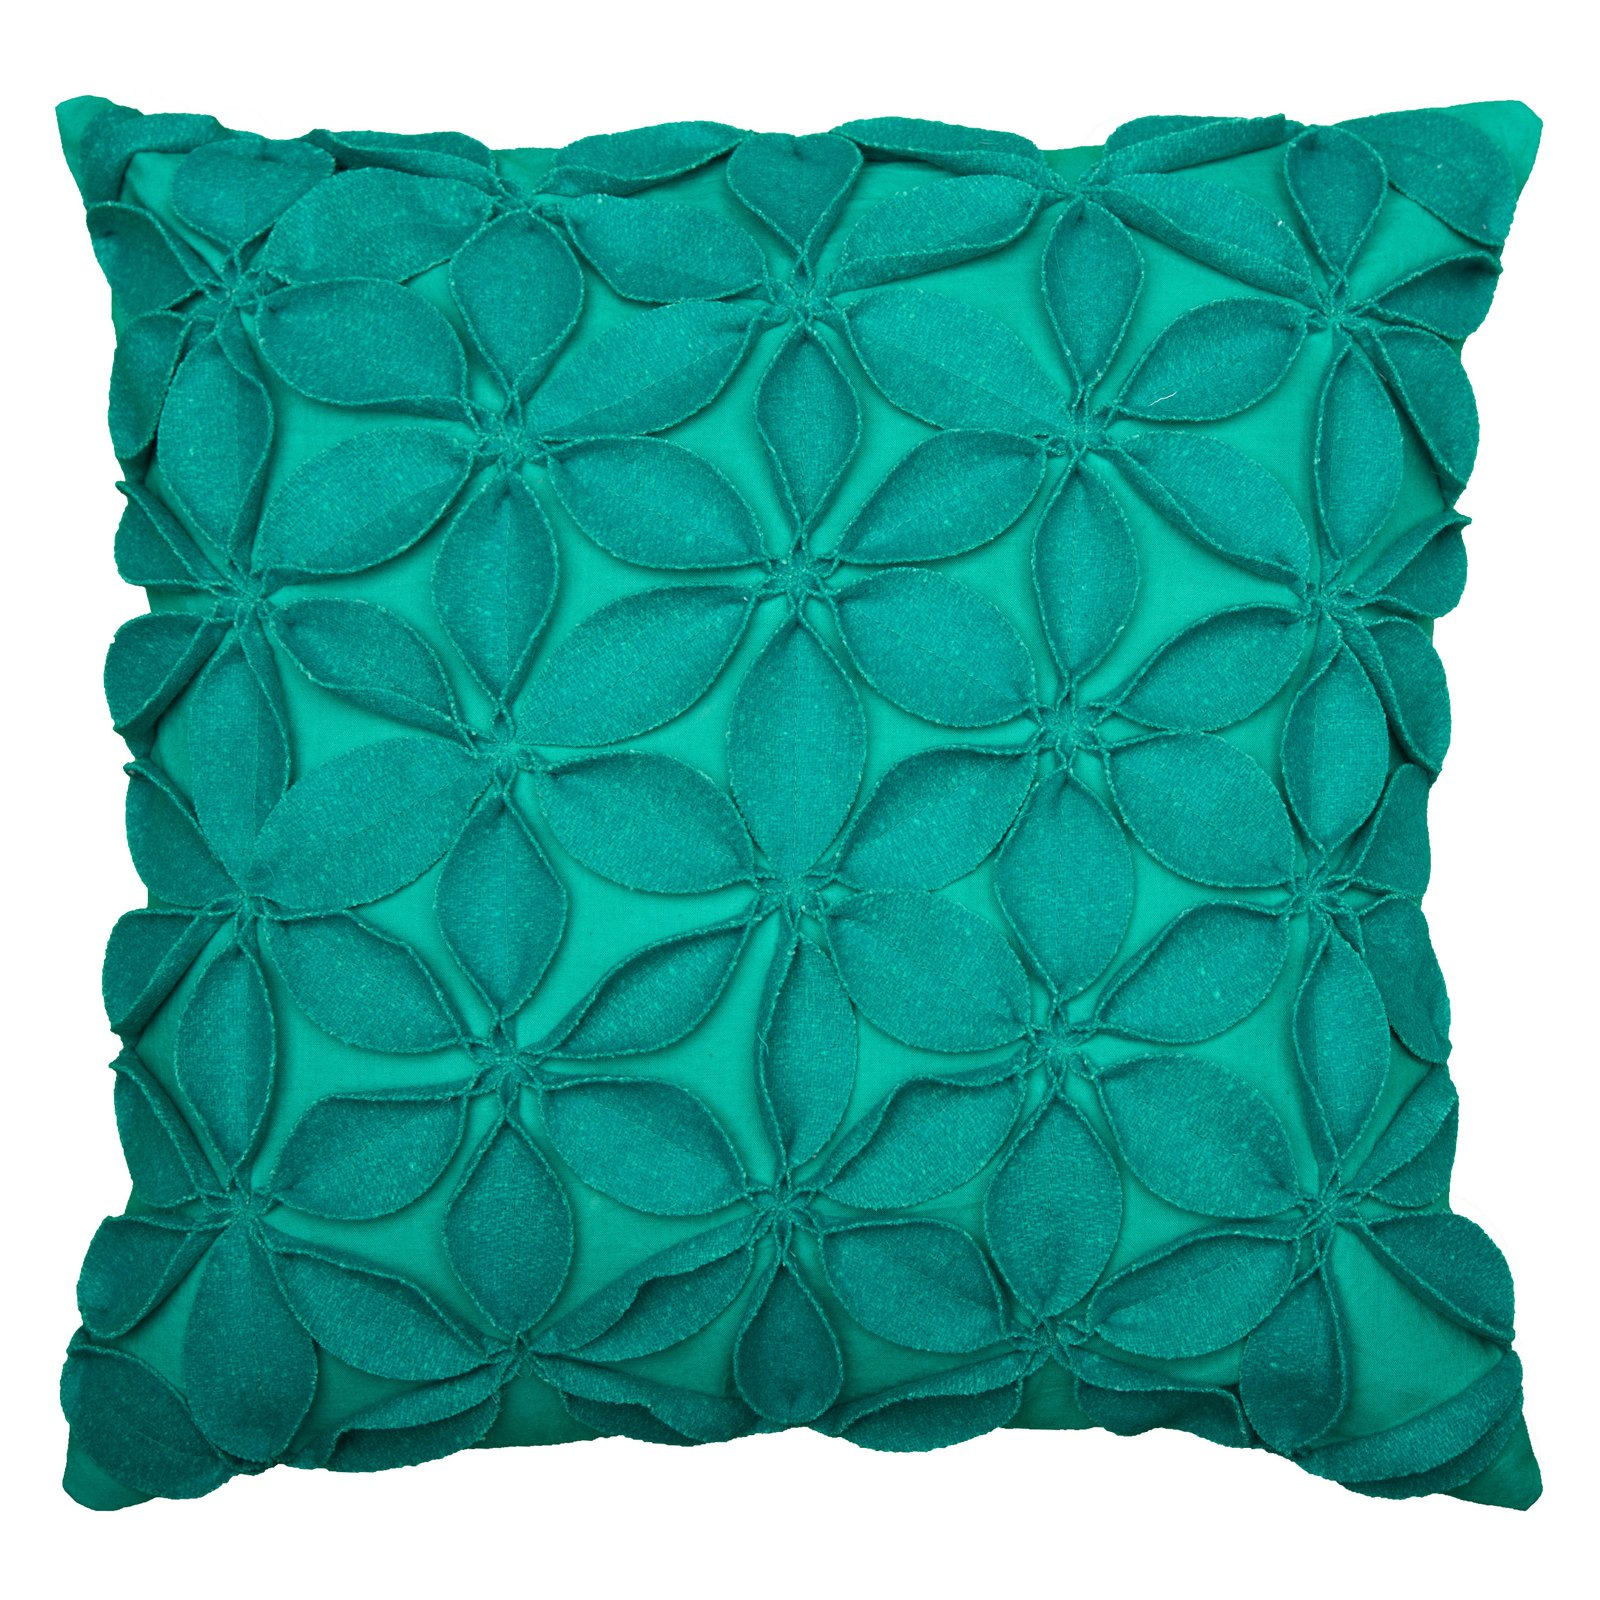 Rizzy Home Decorative Floral Throw Pillow